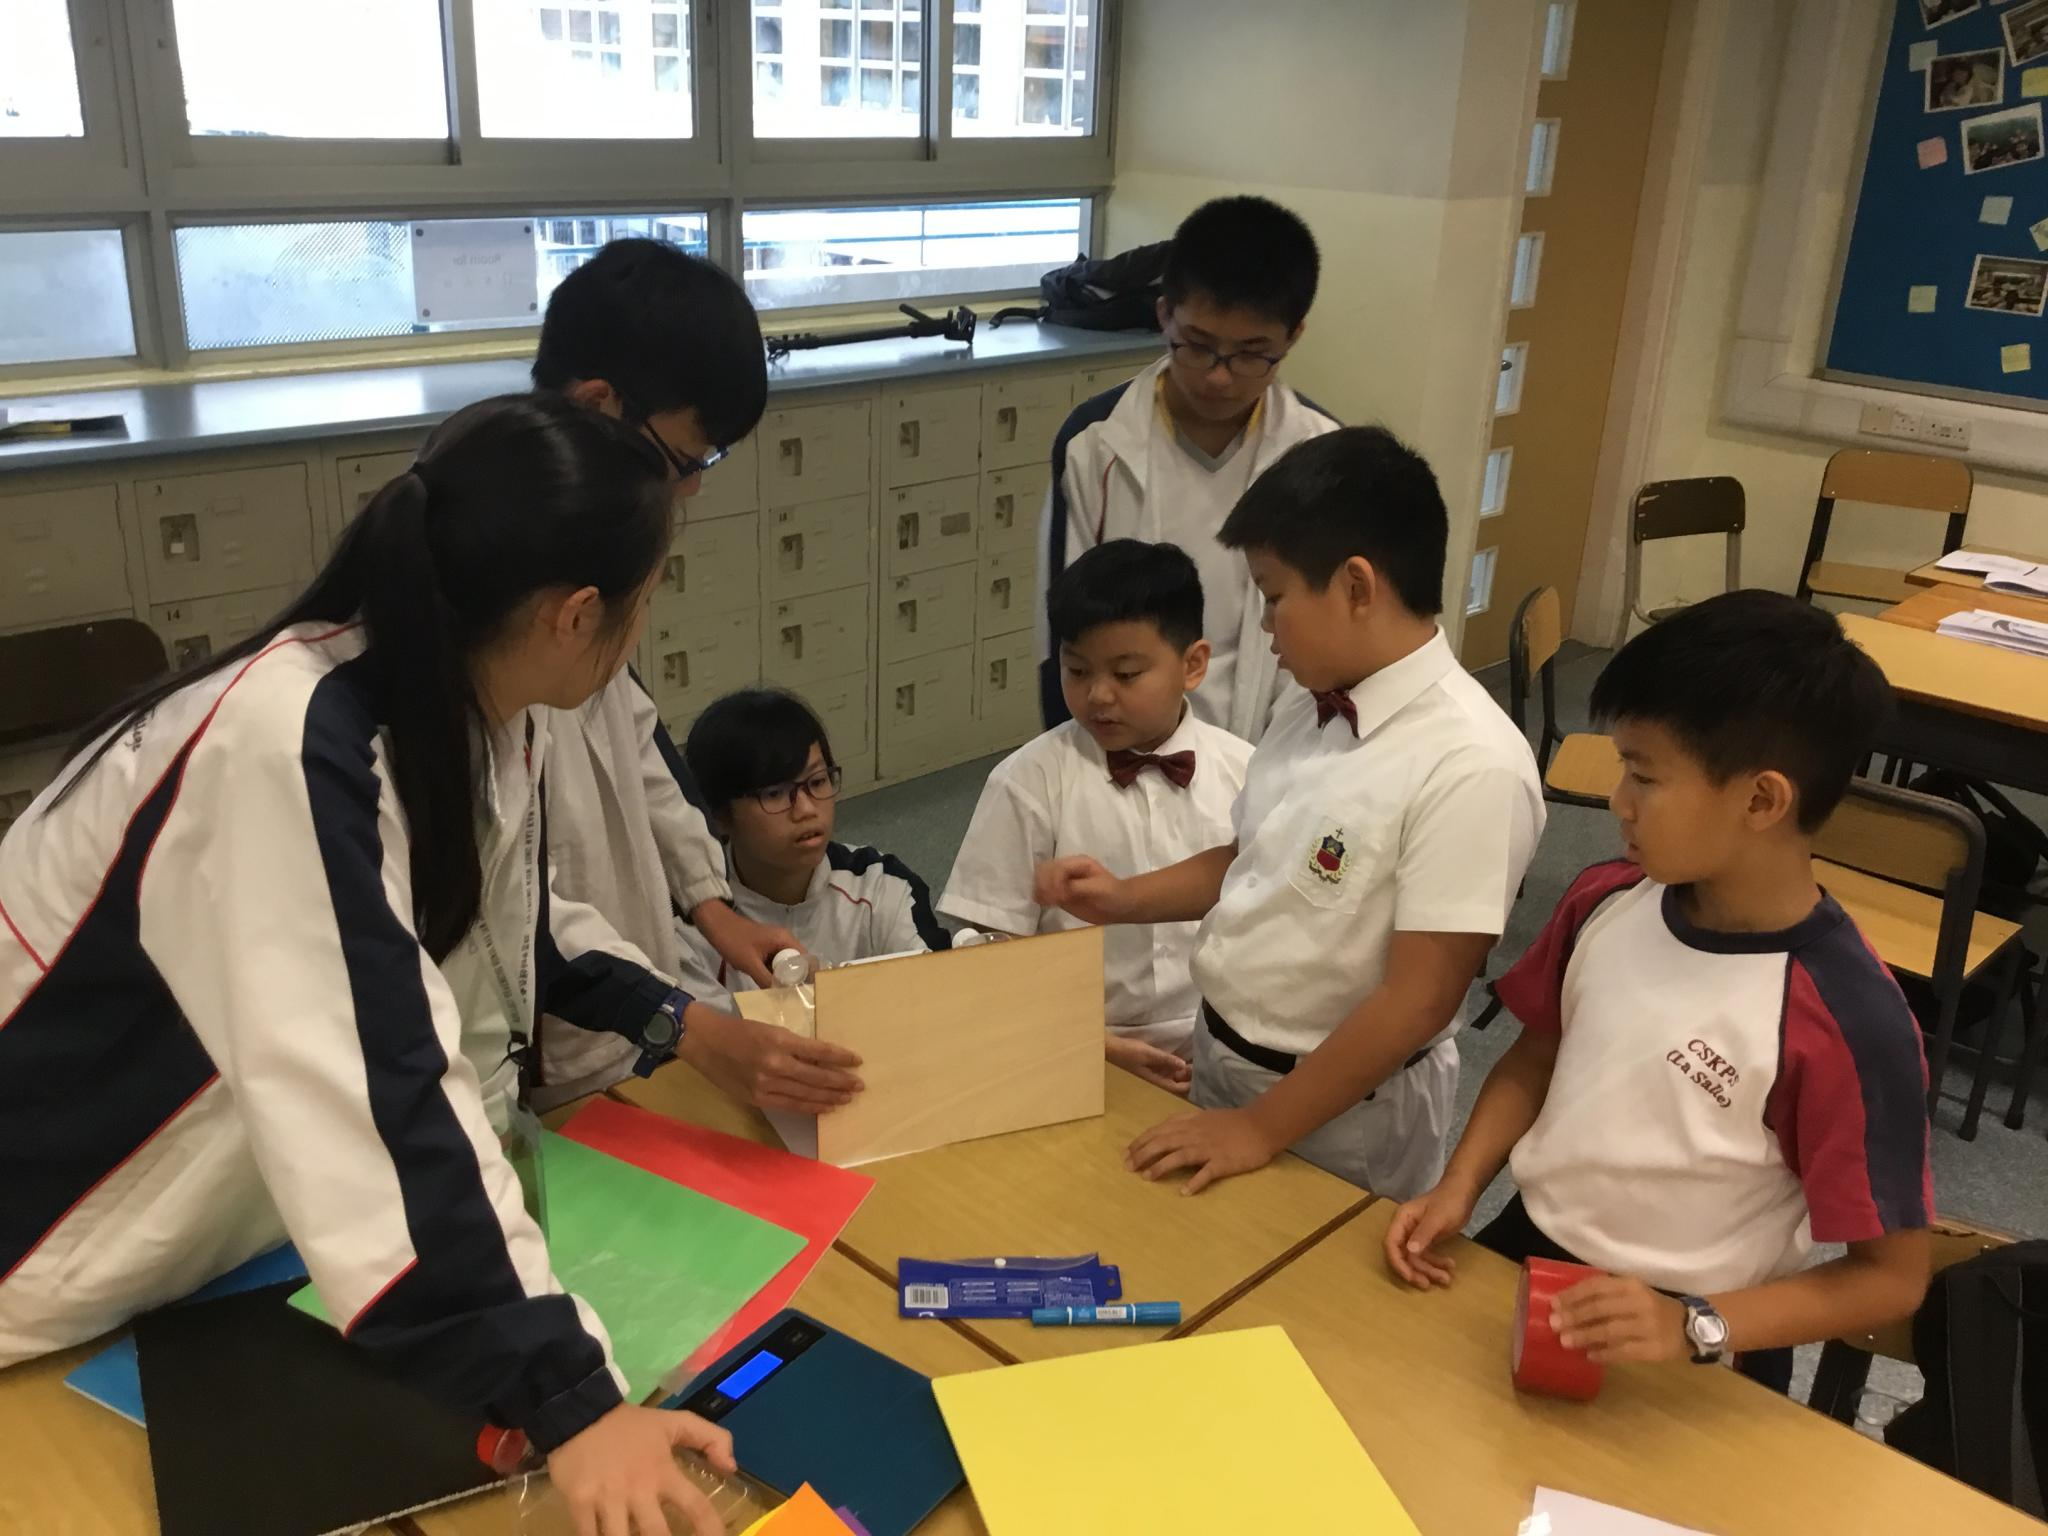 Participants from our school are cooperating with participants from Chan Sui Ki (La Salle) Primary School.